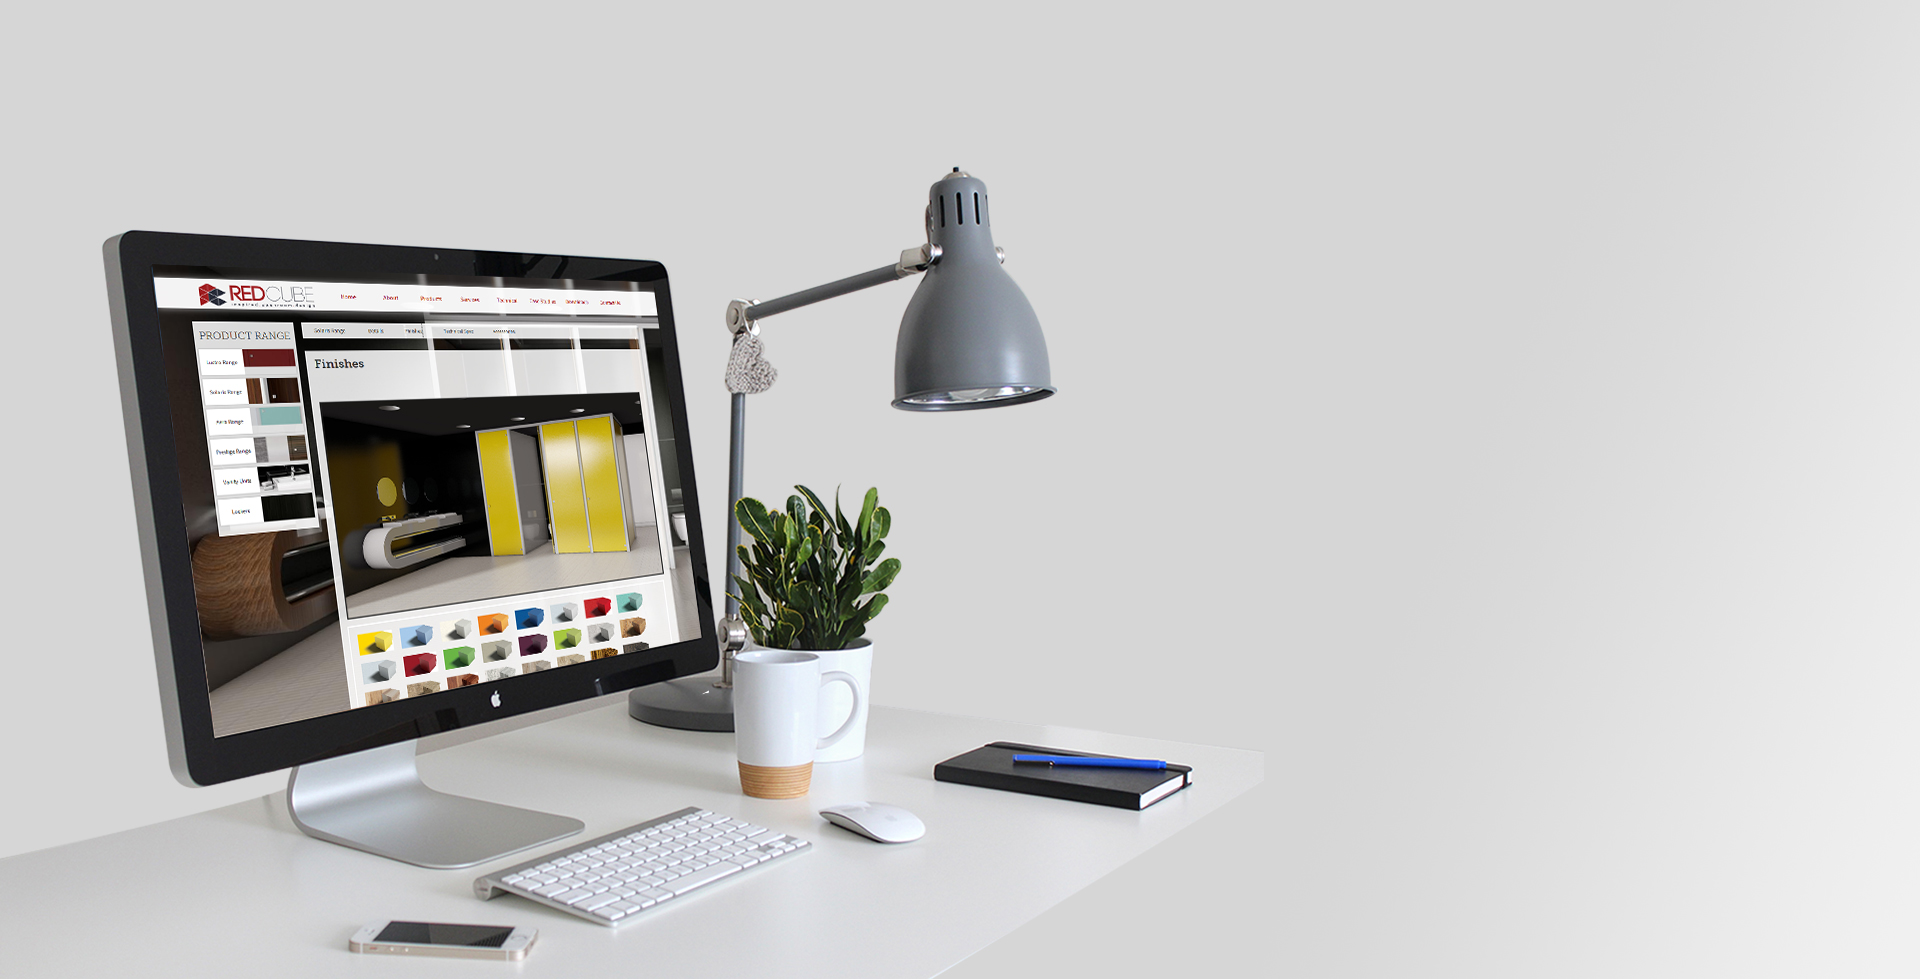 Skills to Look For When Hiring a UI/UX Graphic Designer